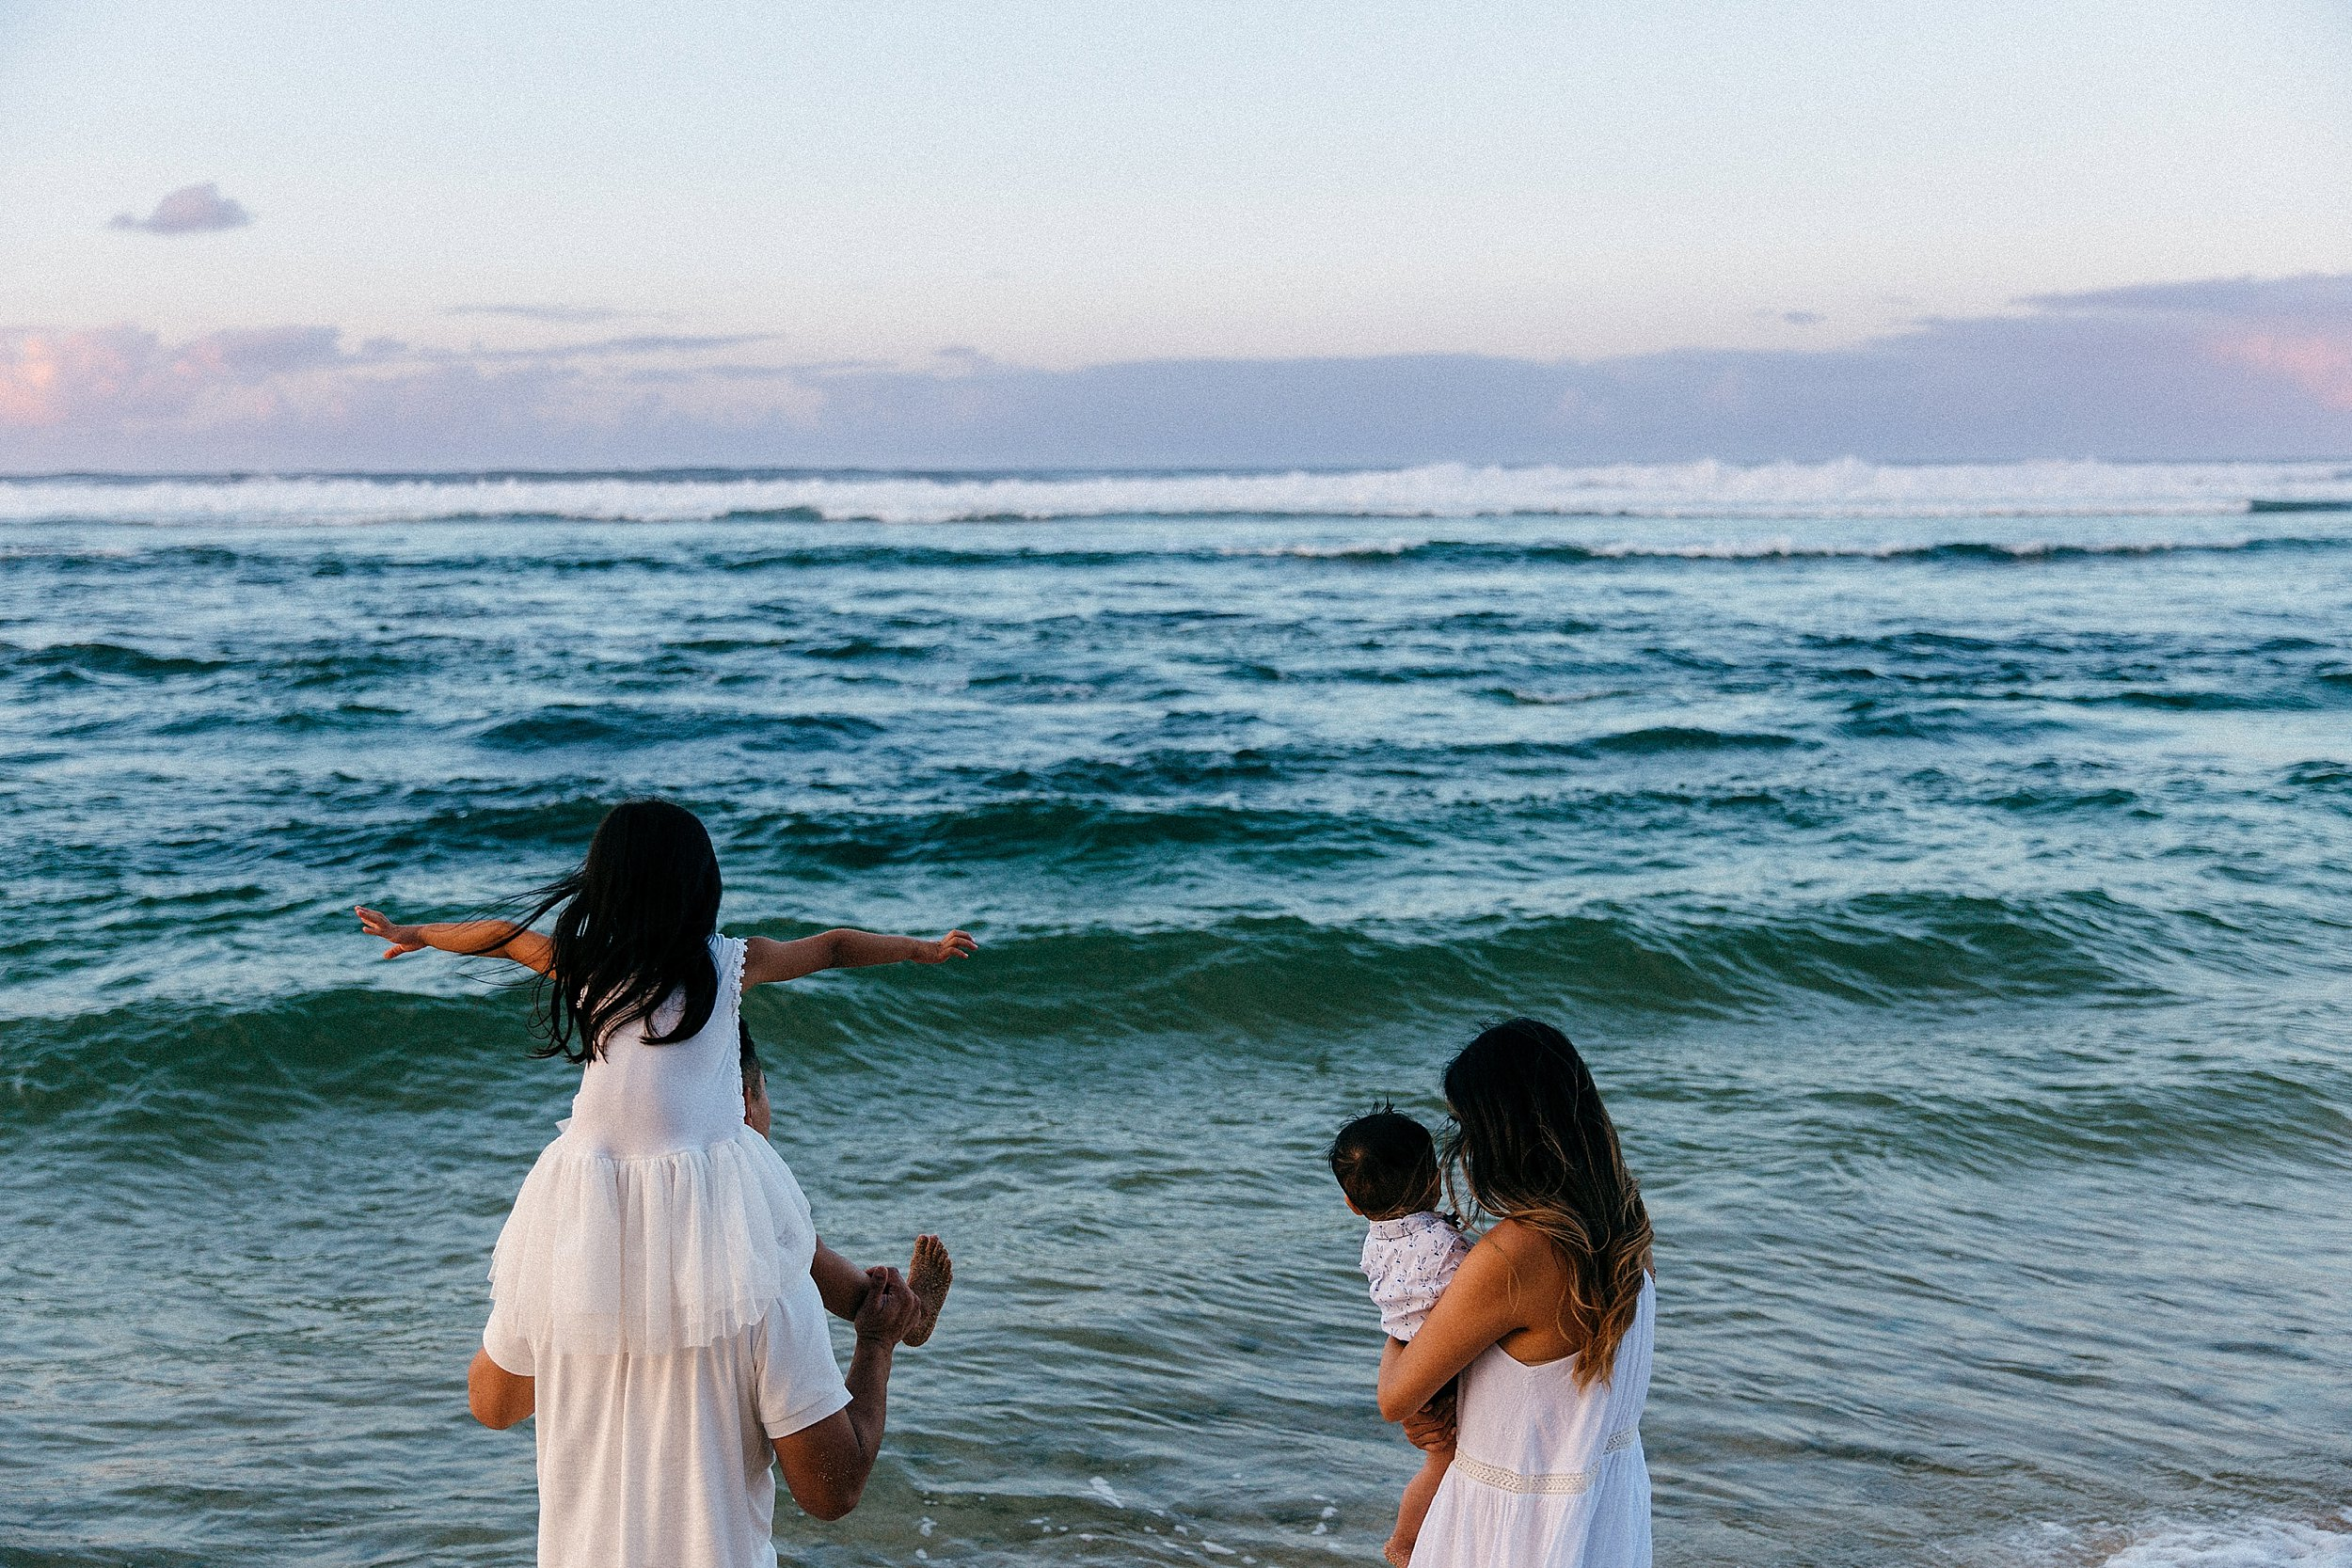 Fun and playful family vacation at Mokuleia Beach in Hawaii.